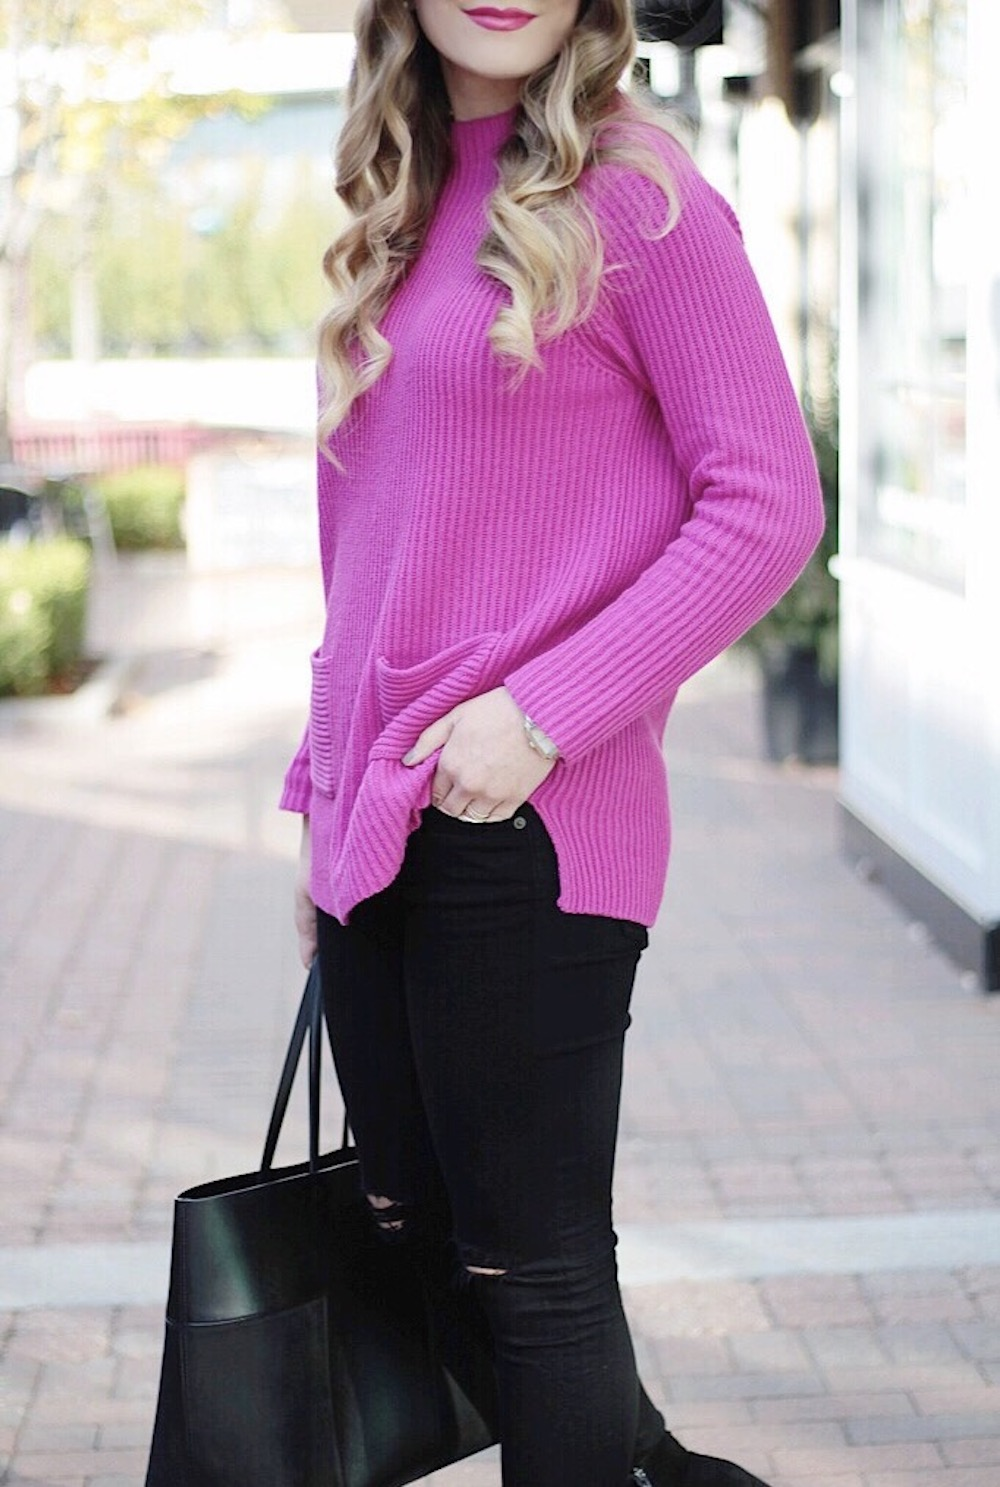 nordstrom chaos pink sweater rachel puccetti